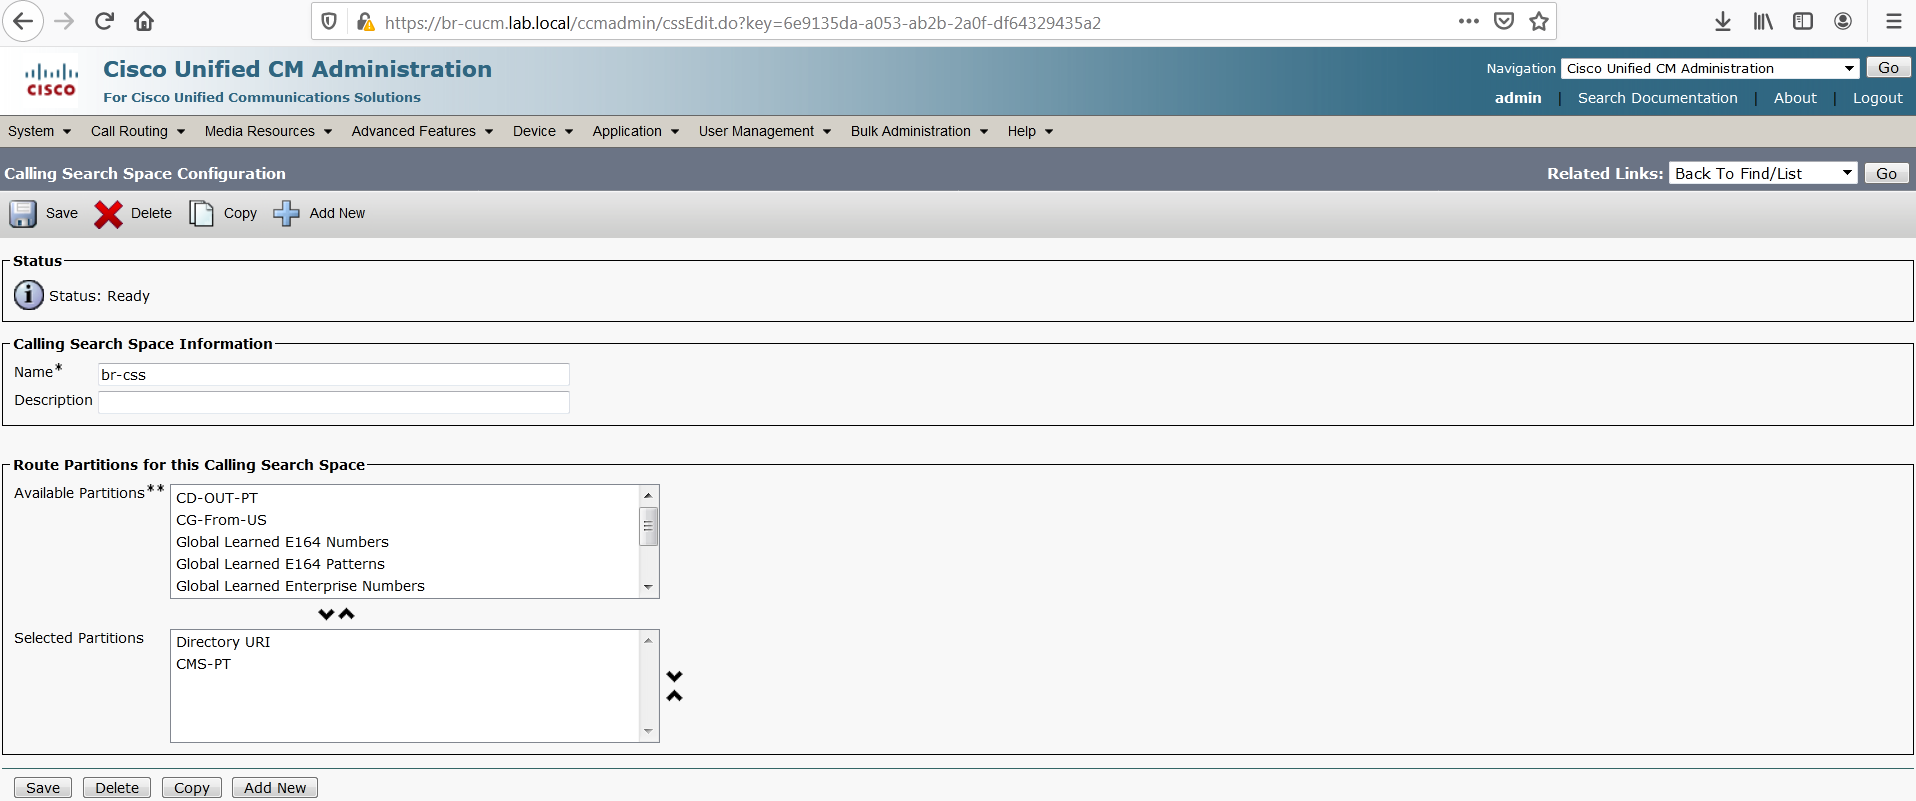 C:\Users\acer\Desktop\Collaboration\Call Bridge Group Rerouting CSS and Accep Header\With Rerouting CSS\4.PNG